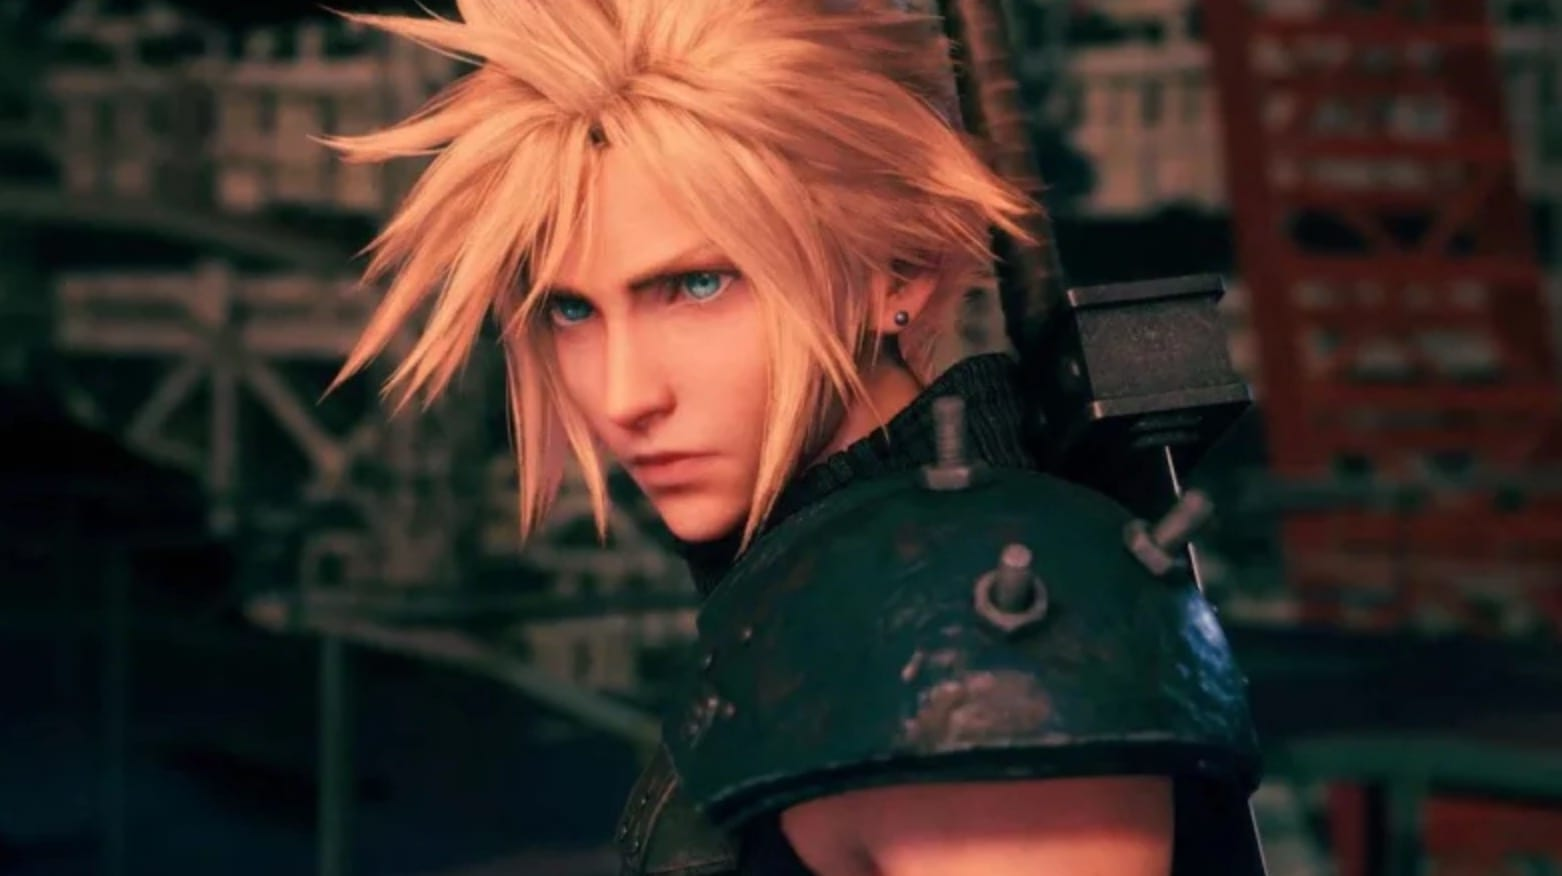 final fantasy vii remake, is there coop multiplayer